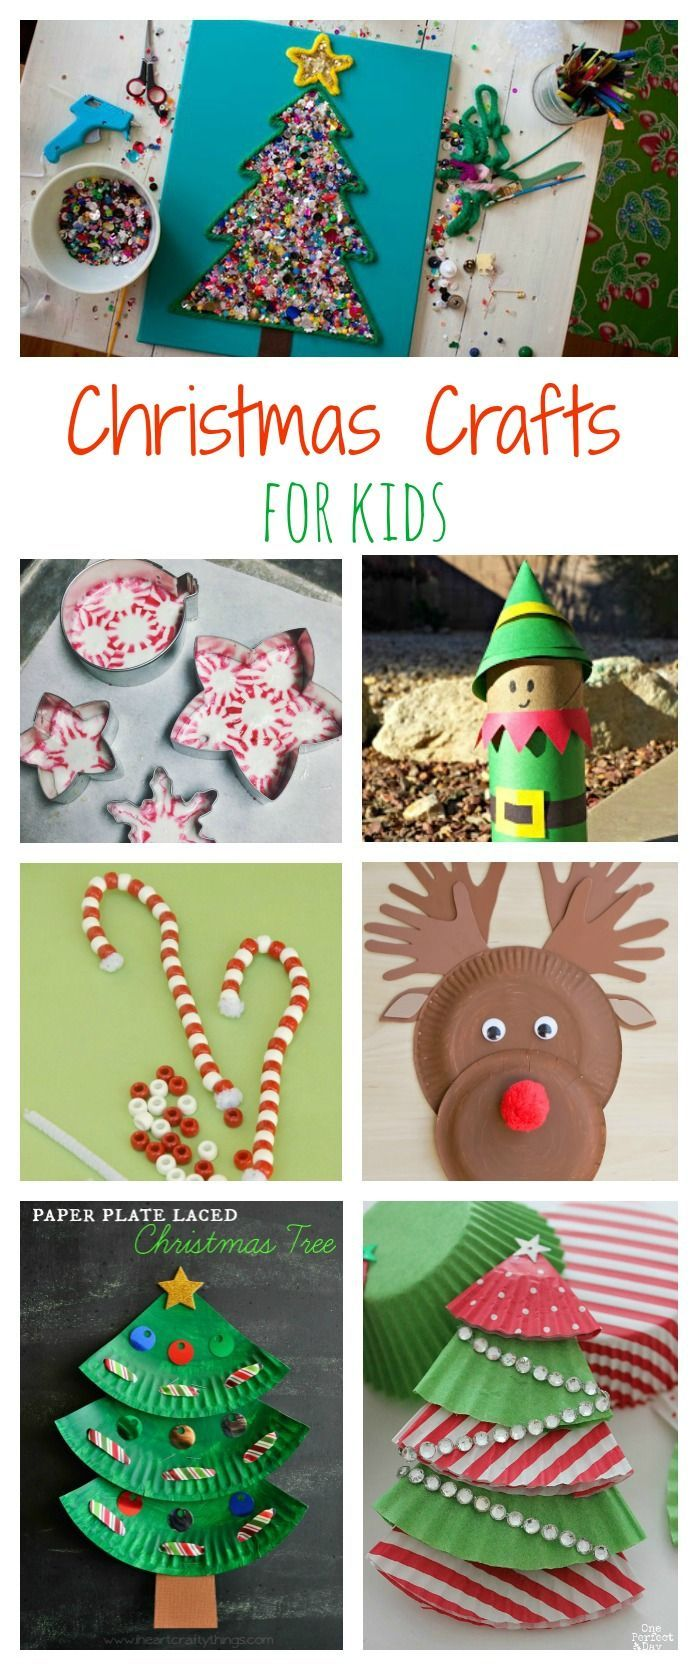 Top 10 Christmas Crafts for Kids! Reindeer, Santa, Christmas tree crafts and more!